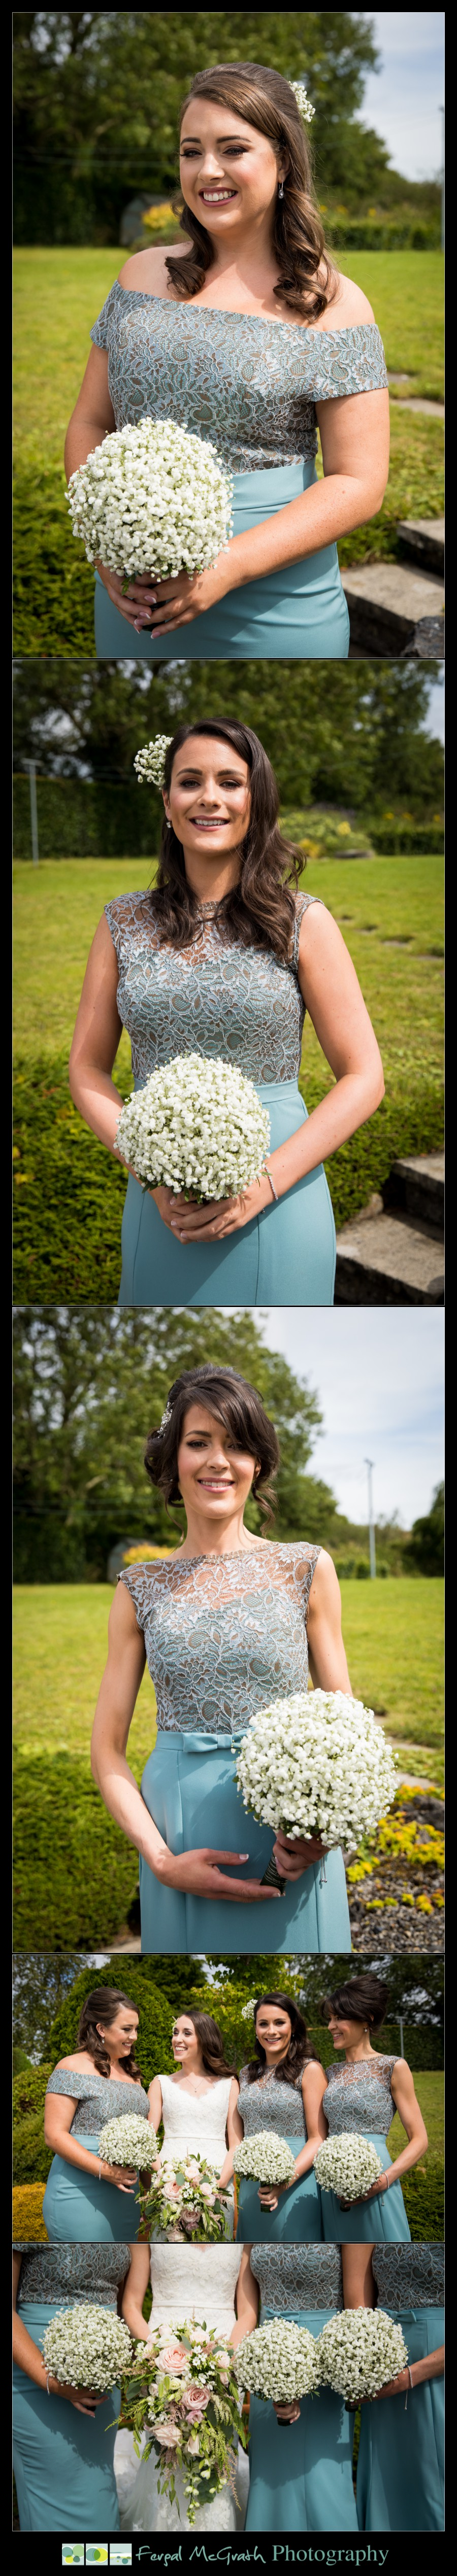 Castle Dargan Hotel Summer Wedding beautiful bridesmaids dresses and bouquets